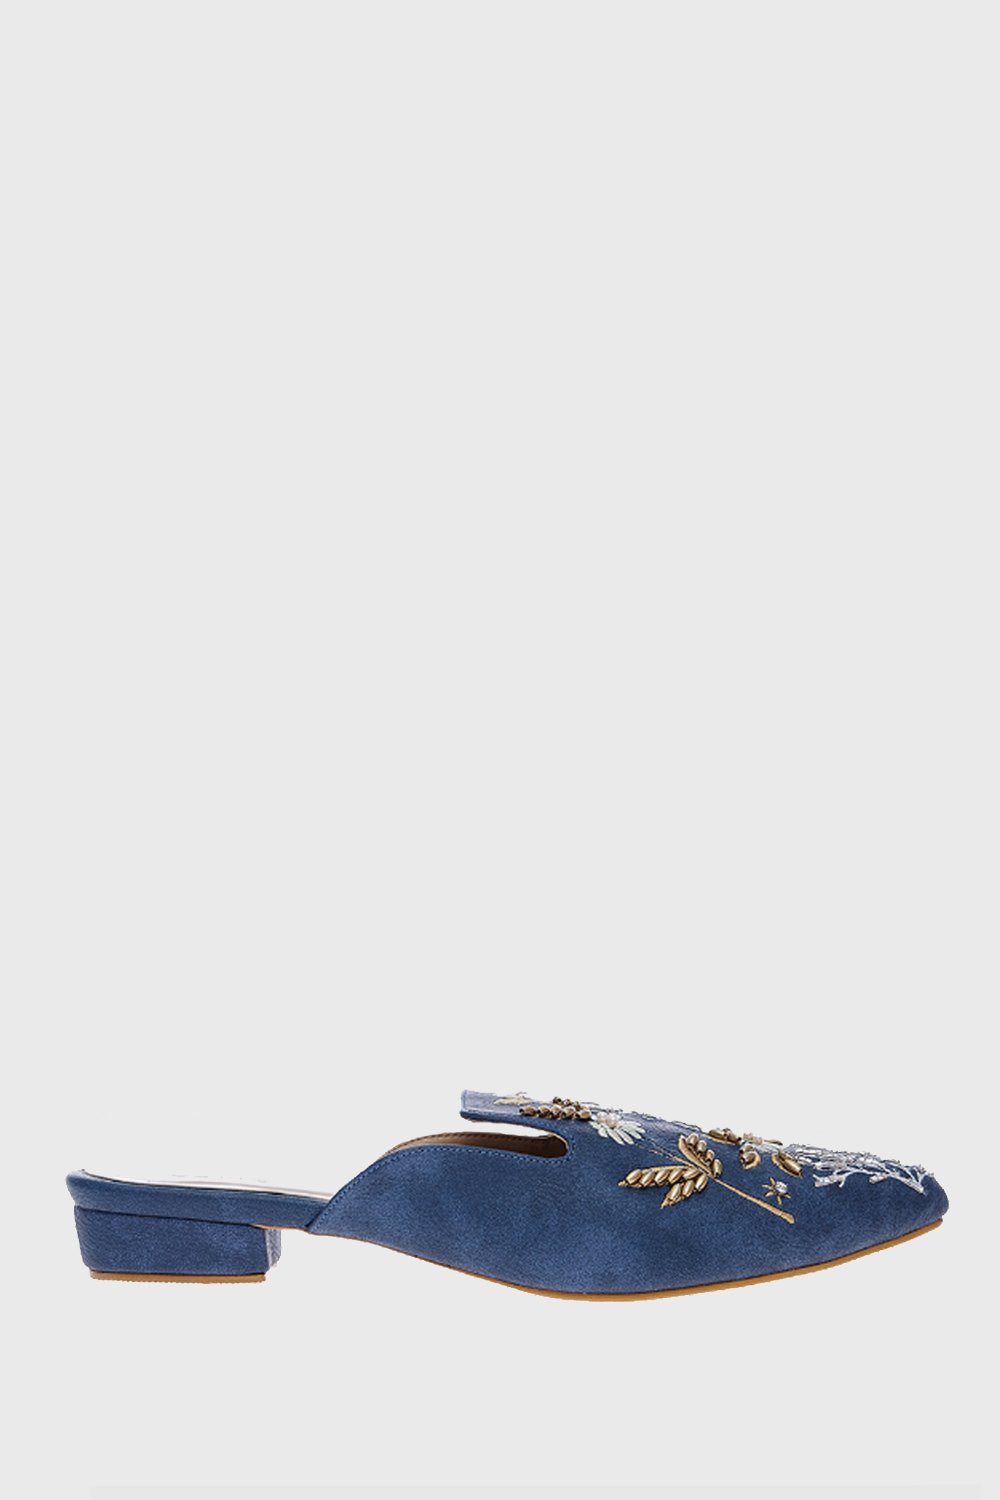 Mila Shoes in Blue